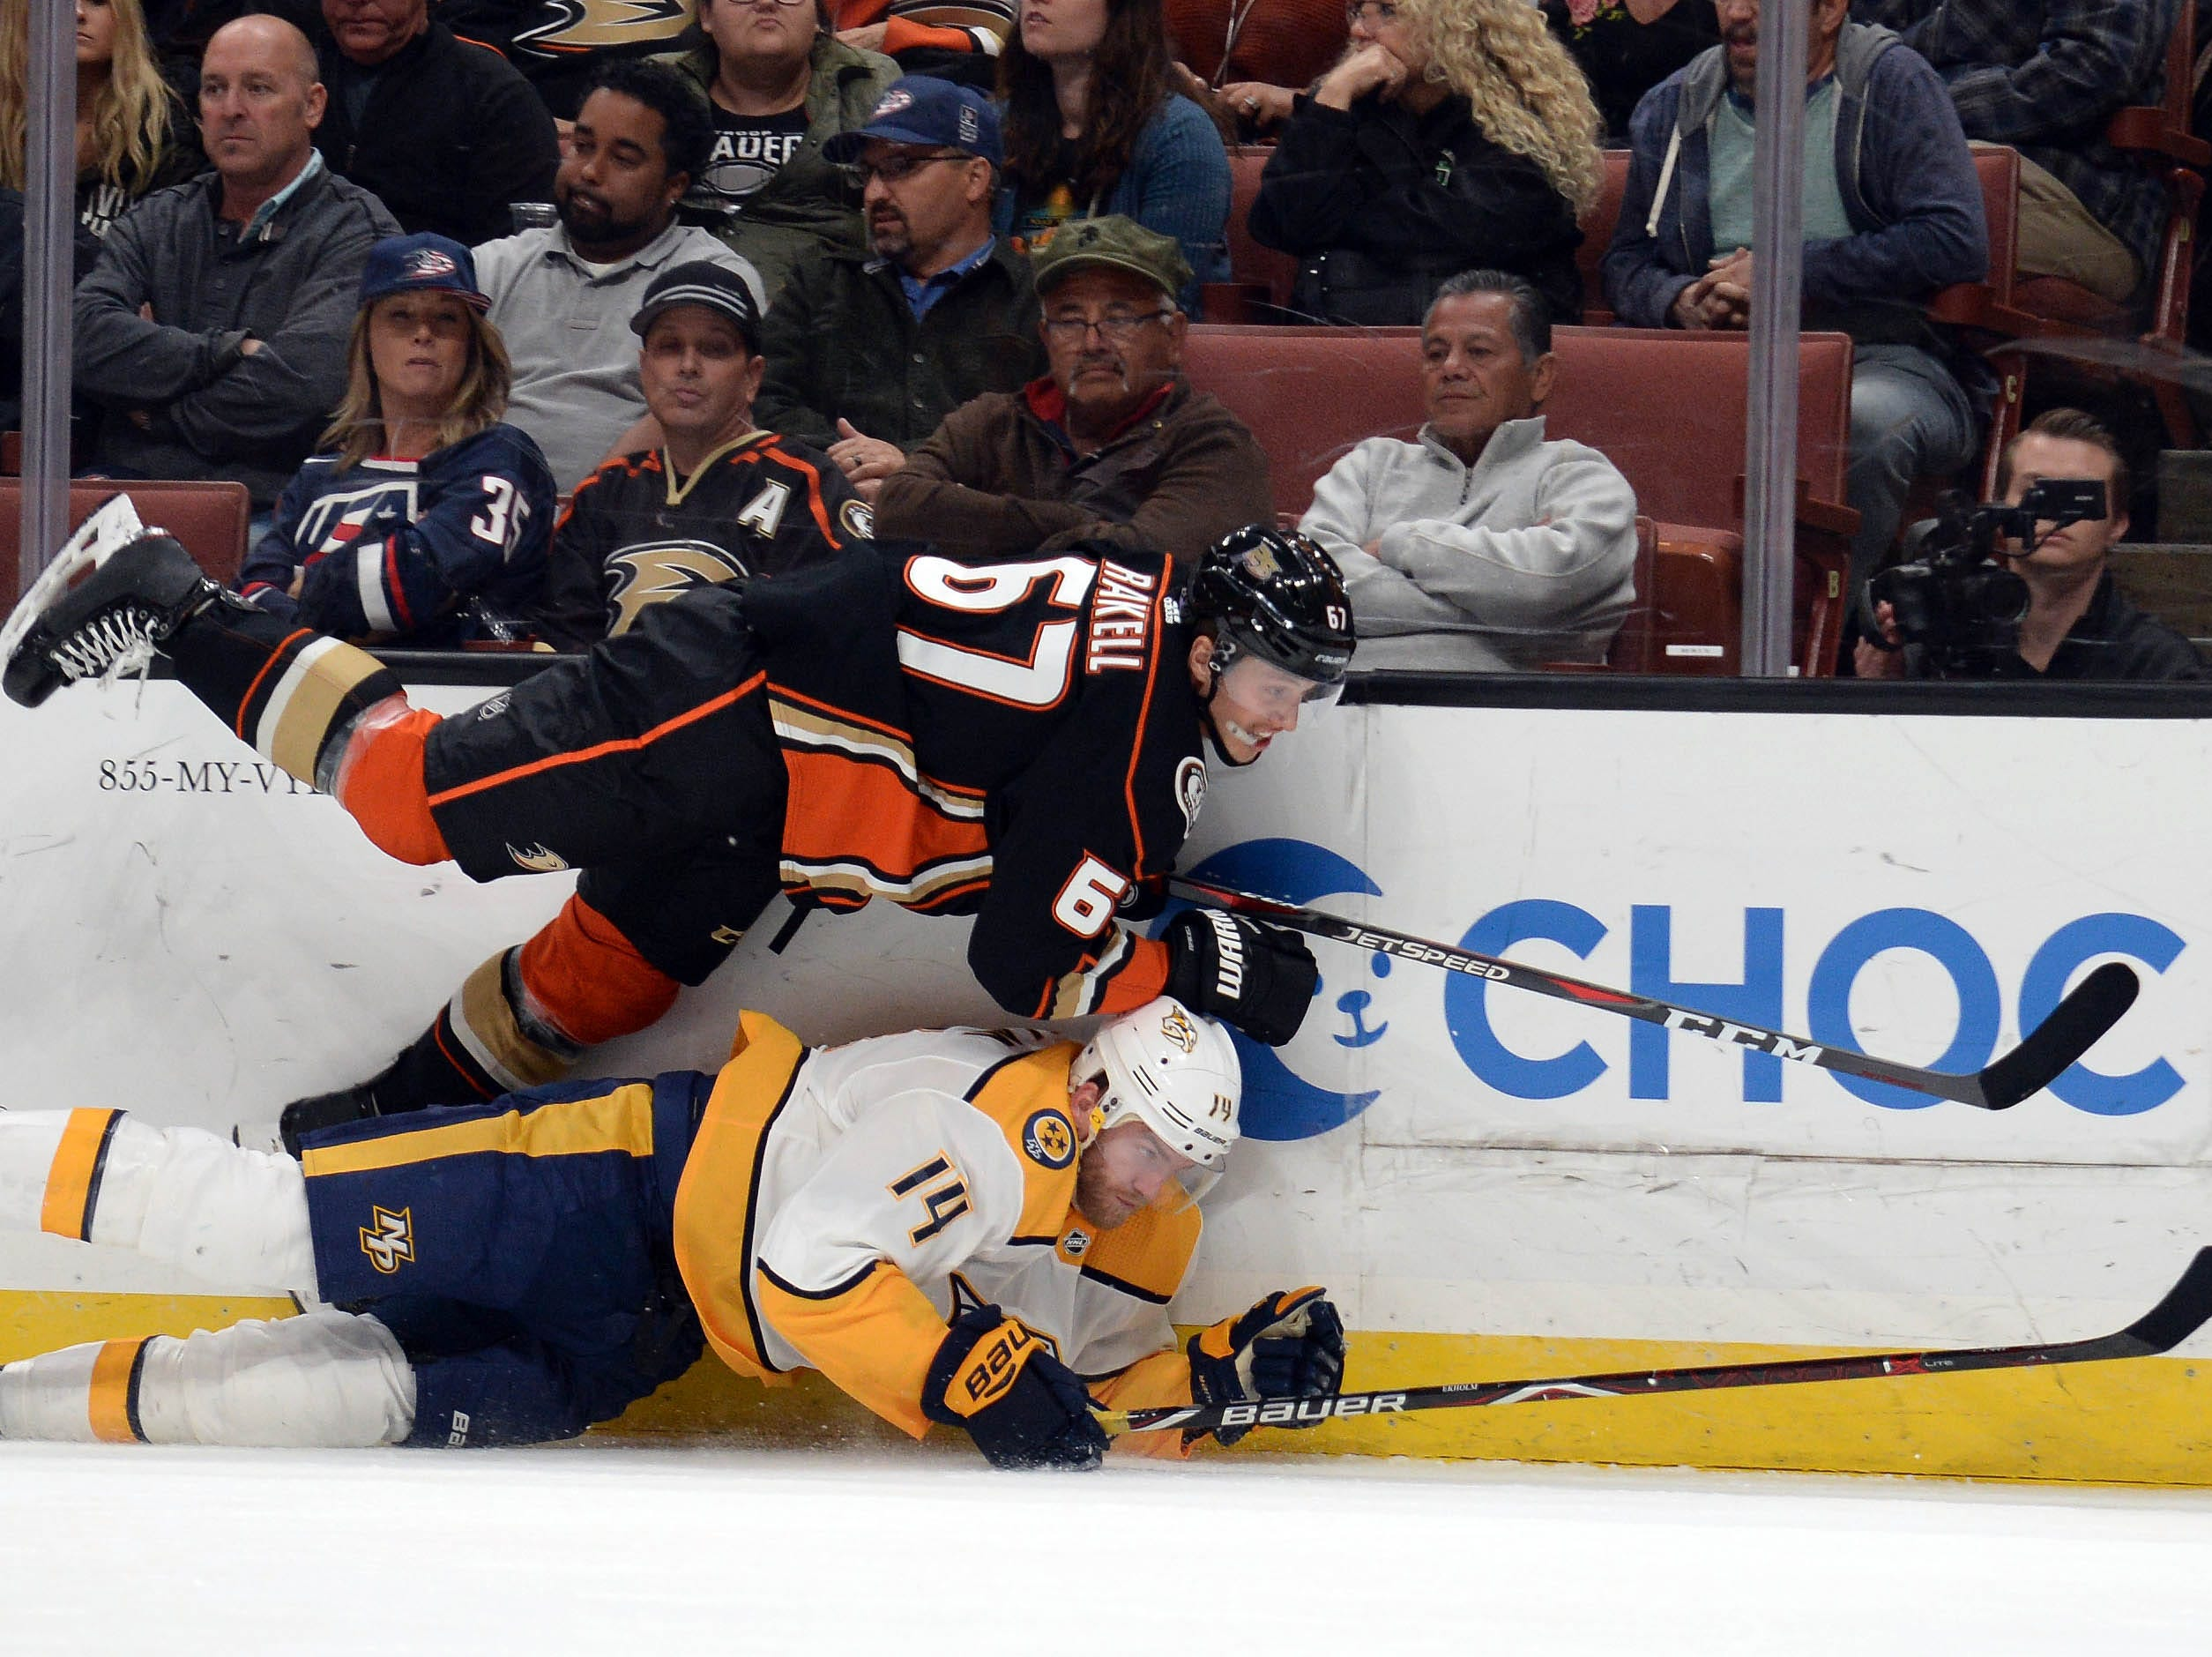 November 12, 2018; Anaheim, CA, USA; Anaheim Ducks center Rickard Rakell (67) plays for the puck against Nashville Predators defenseman Mattias Ekholm (14) during the second period at Honda Center.